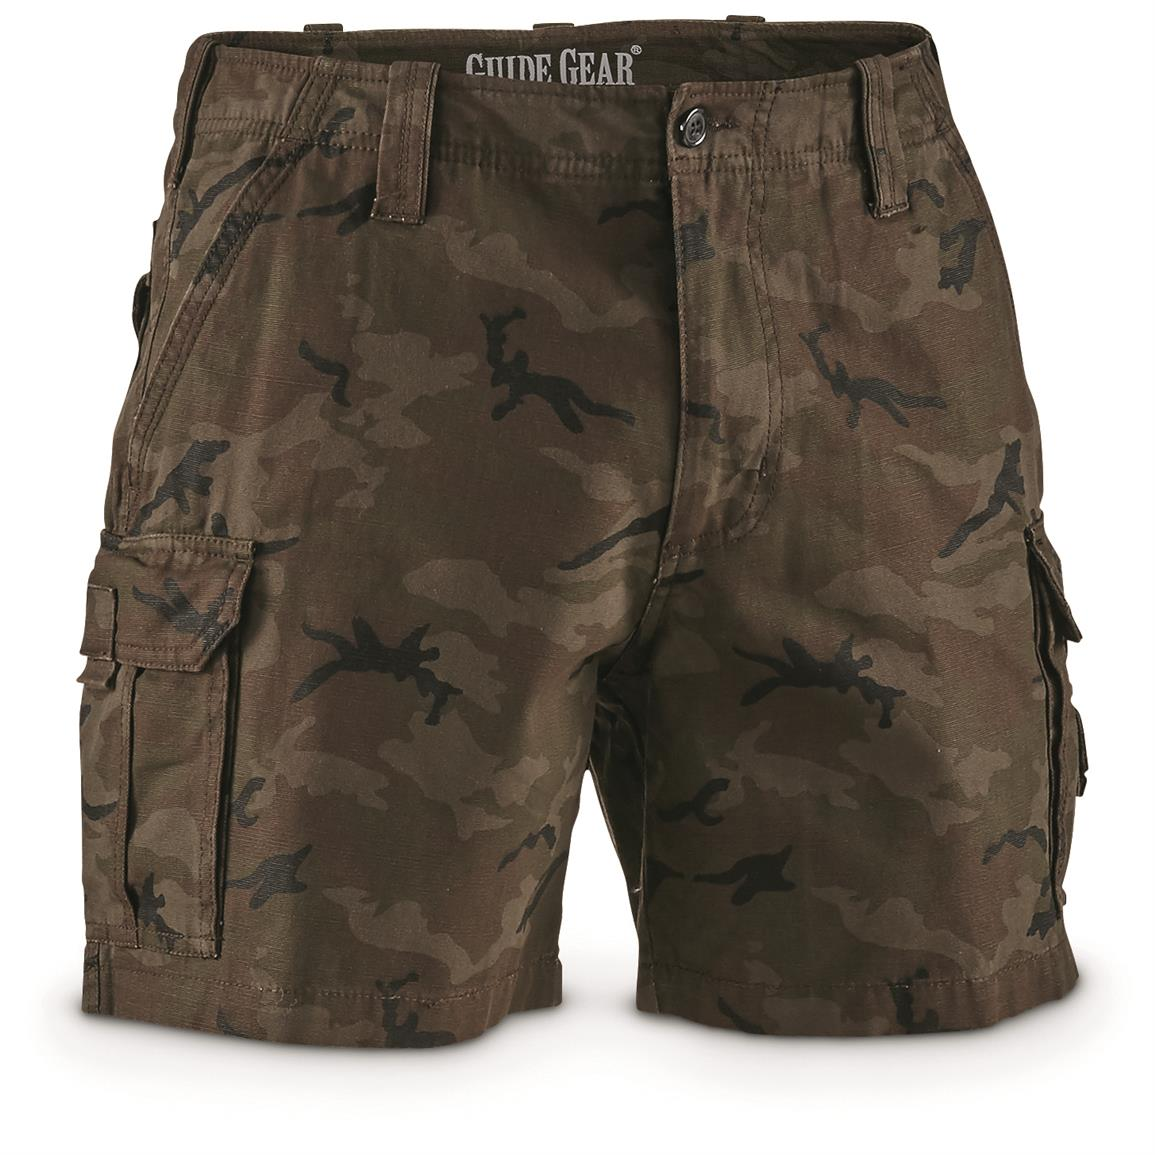 "Guide Gear Men's Outdoor Cargo Shorts, Camo, 6"" inseam"